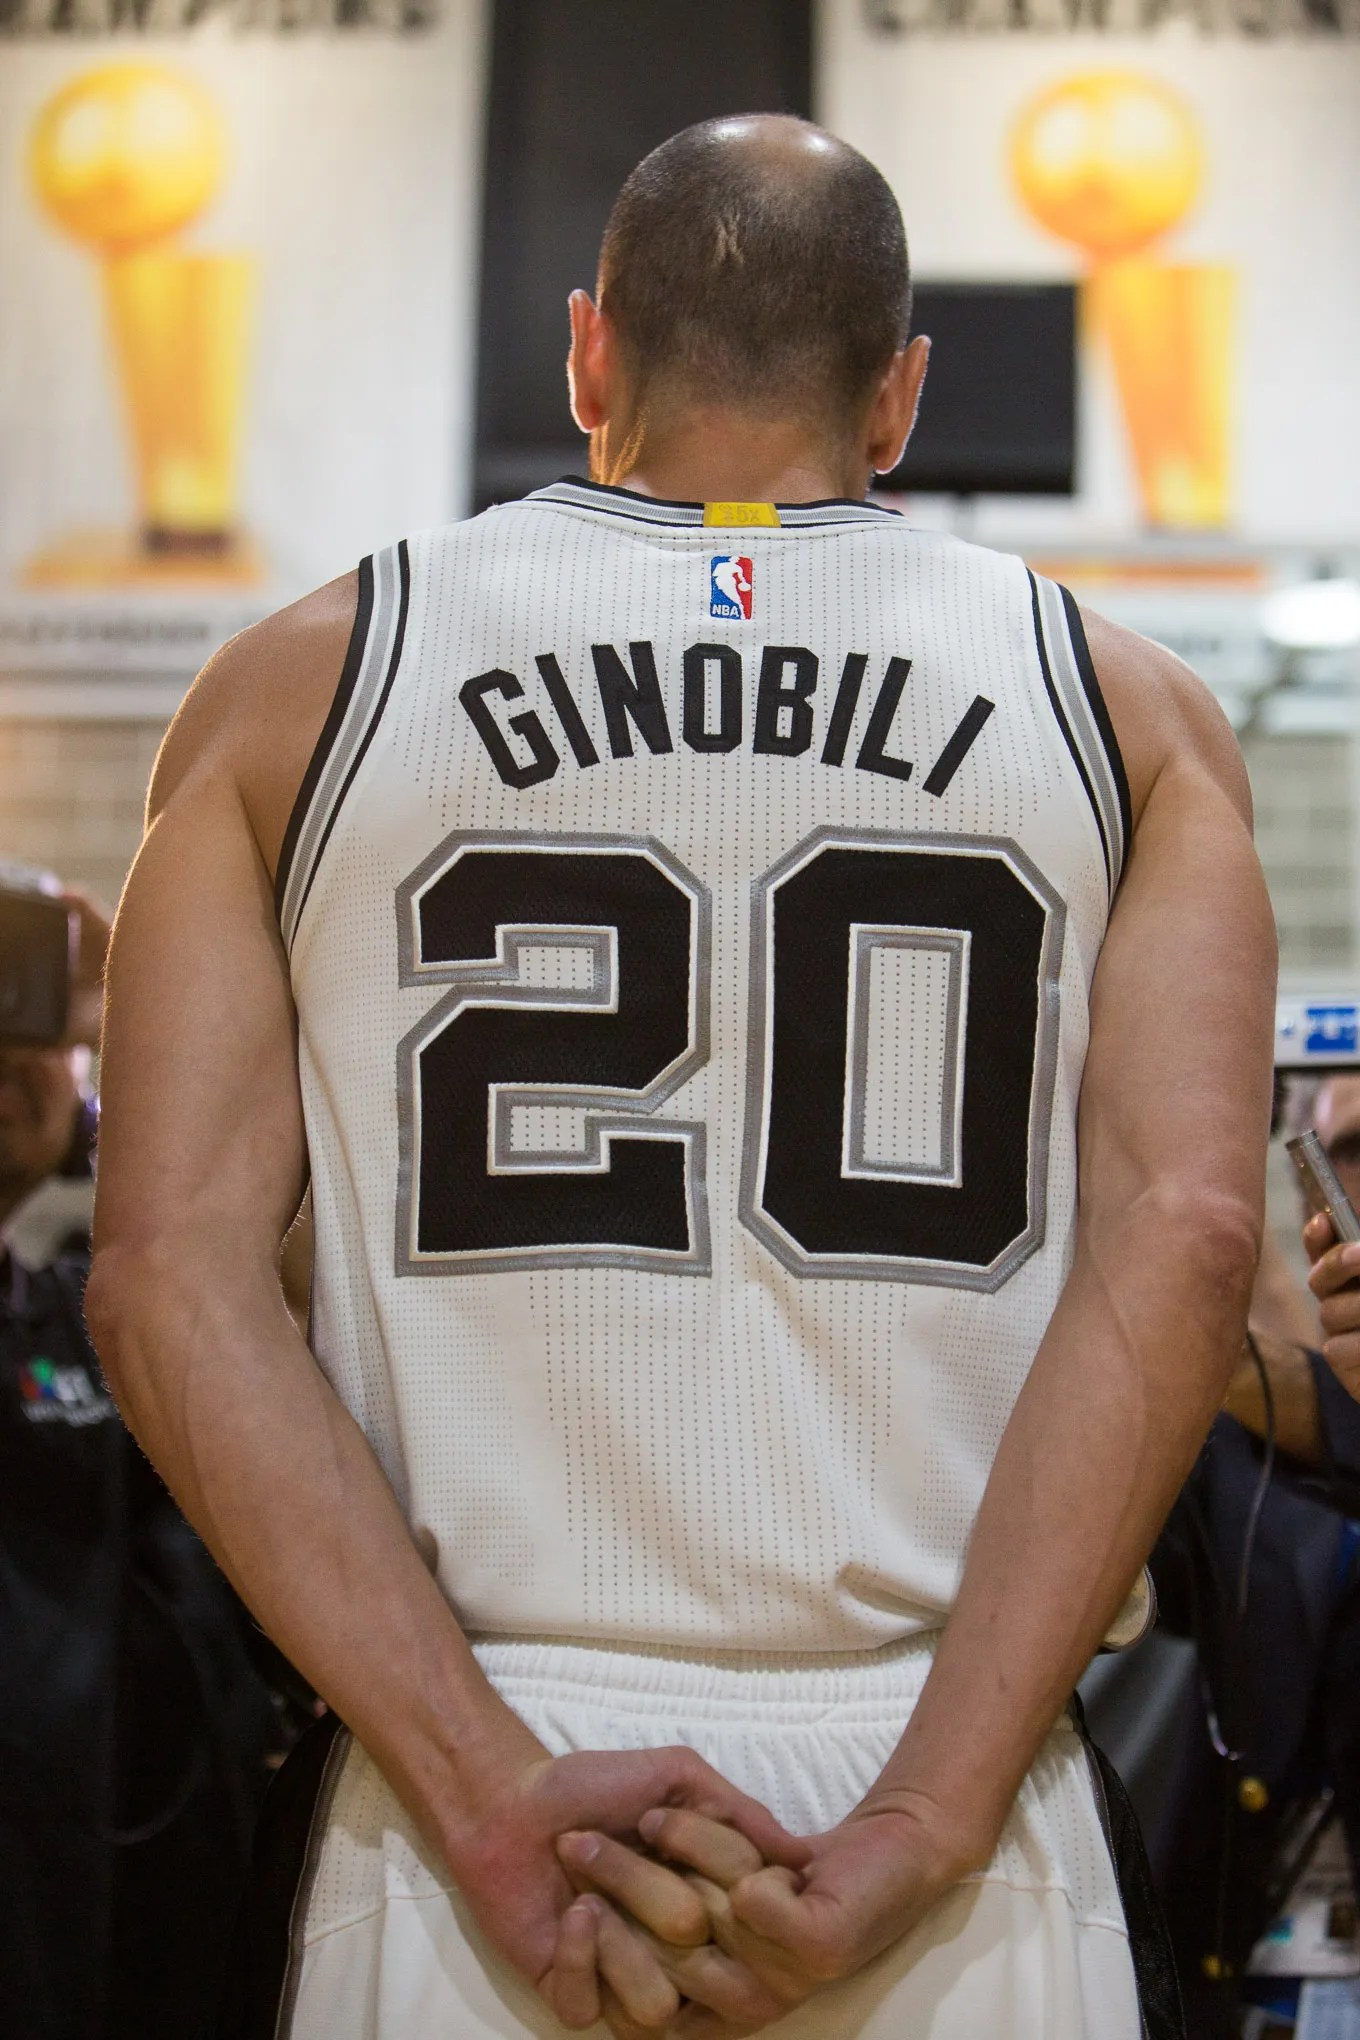 Spurs Guard Manu Ginobili stands for an interview in front of championship banners at the Spurs Practice Facility. Photo by Scott Ball.